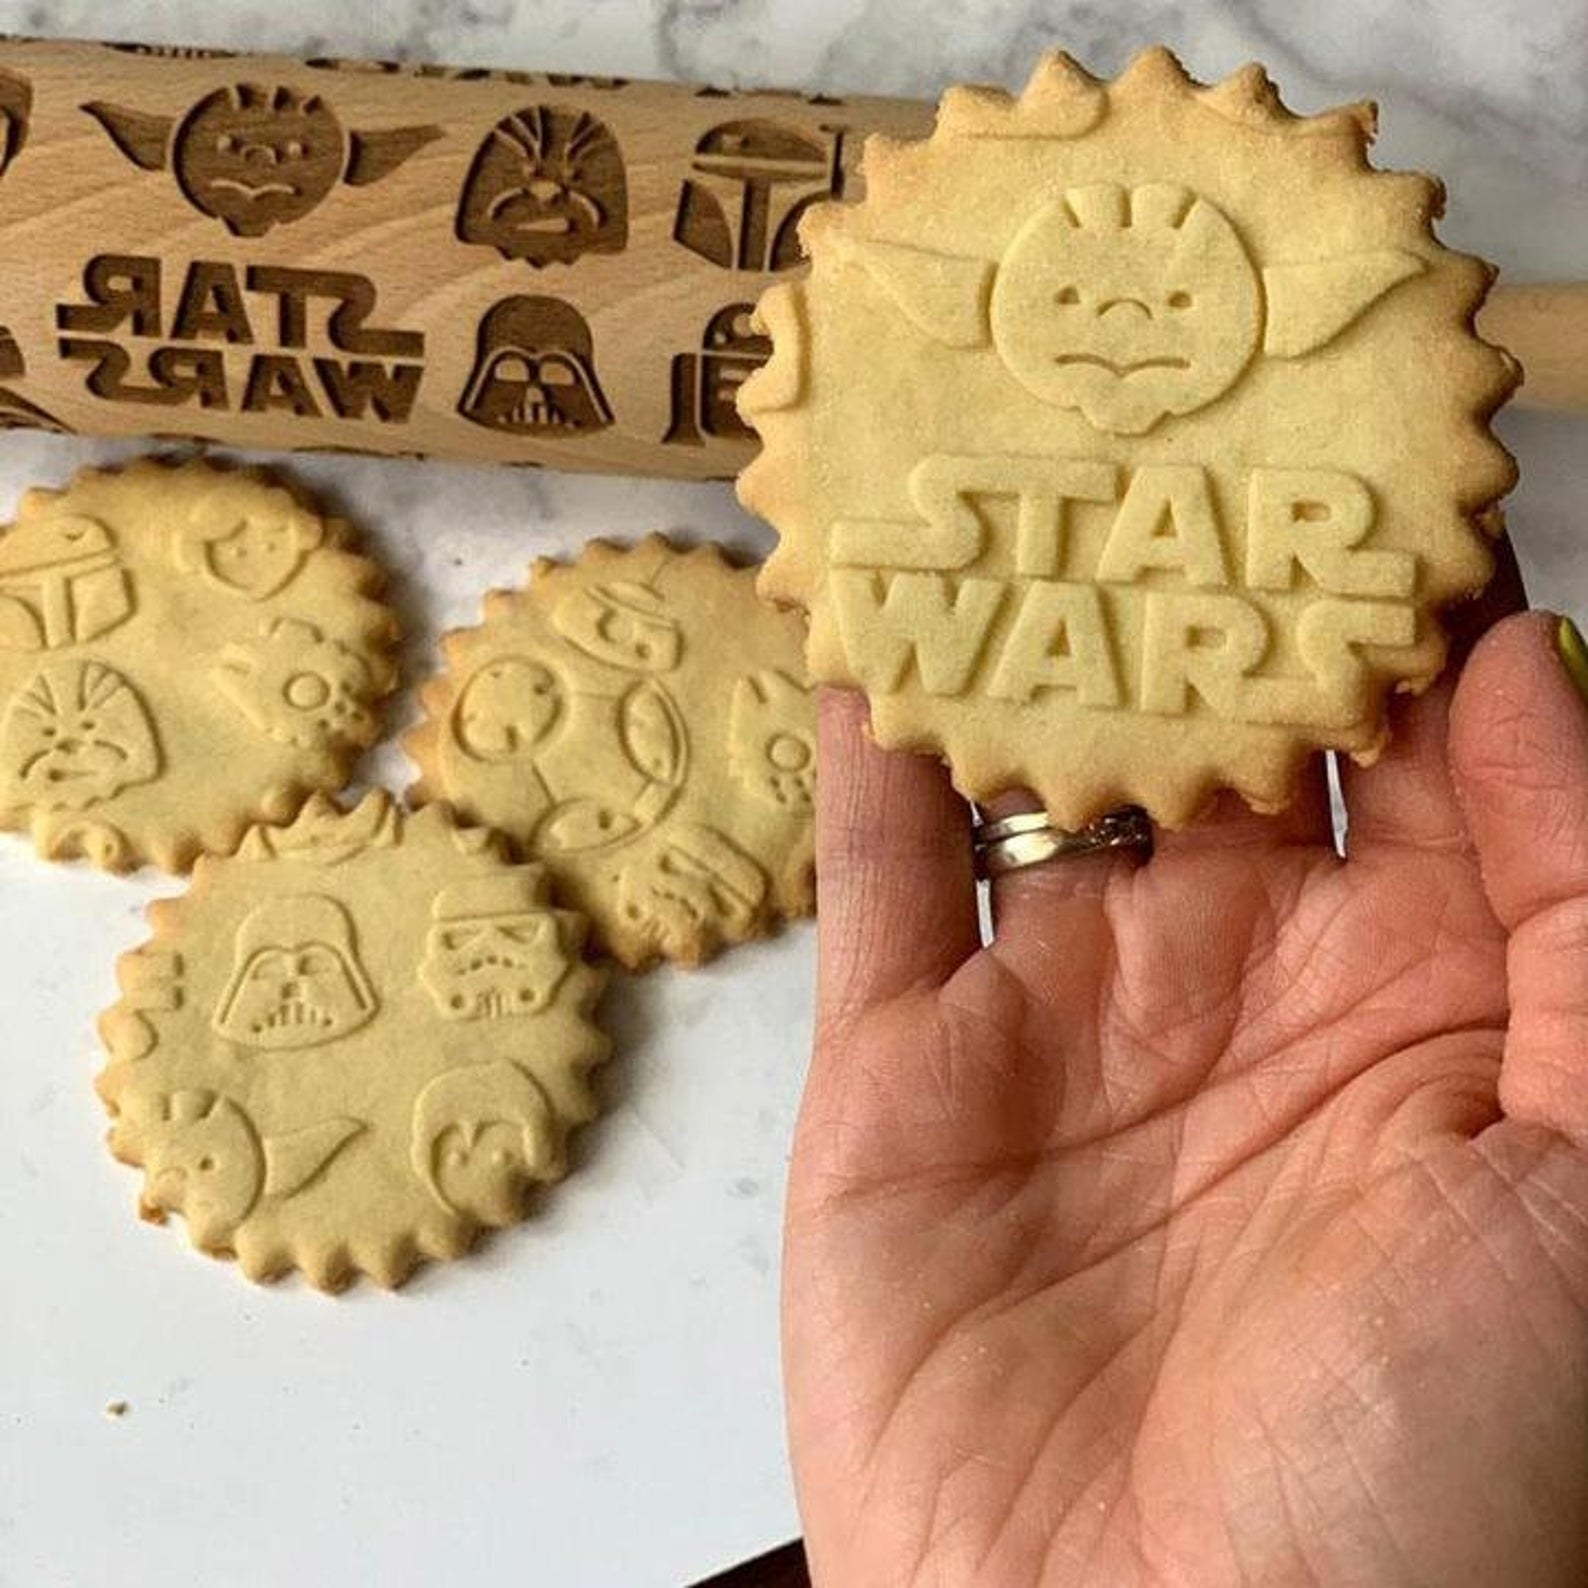 the star wars dough roller and cookies with various imprints on them made using the roller